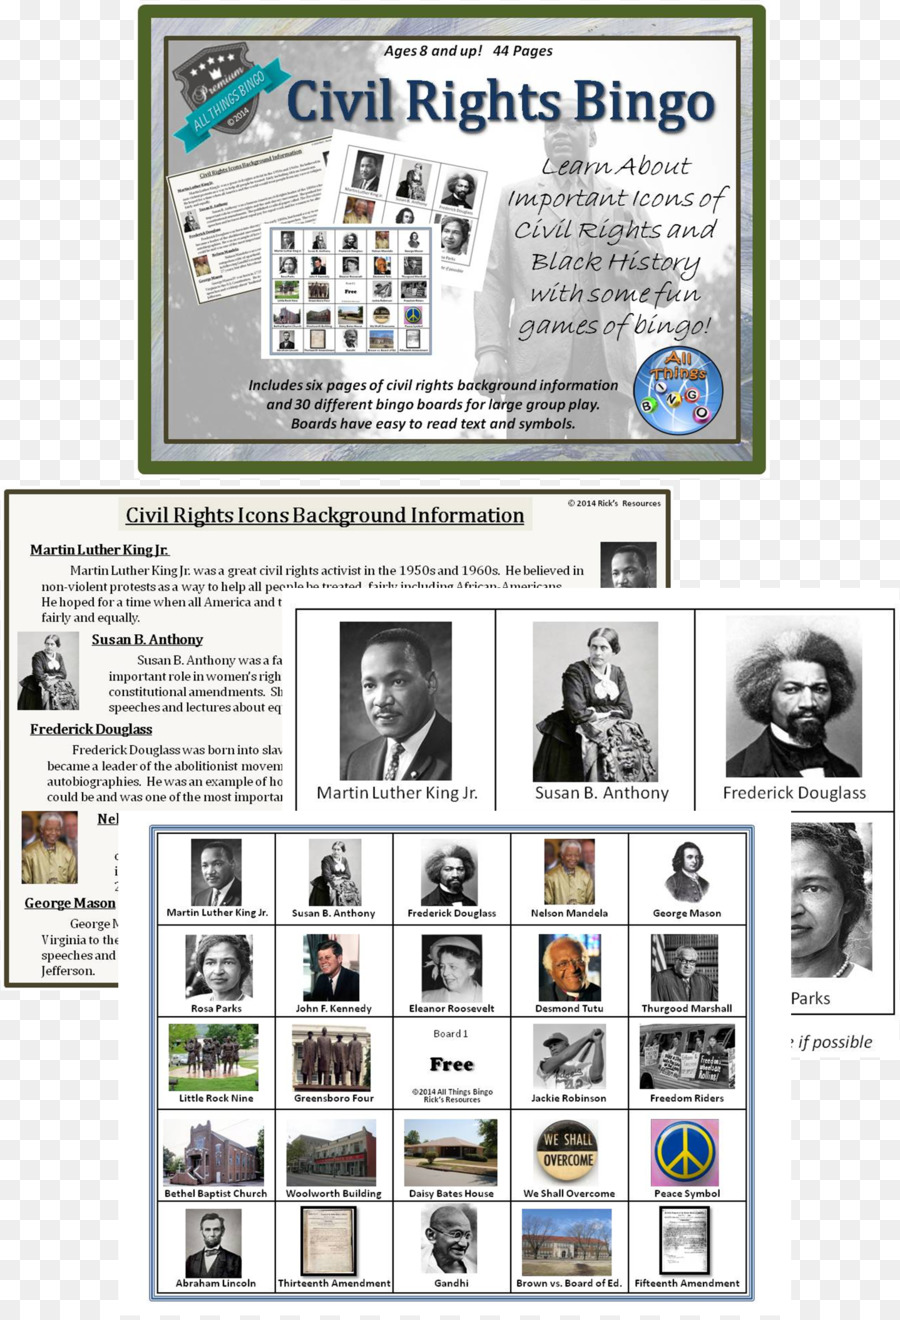 the fight for african american civil rights included rebellions running away and abolitionist speech Most black people in the us were descendants of people who had lived in slavery in the us, and particularly in the south they experienced legal segregation, limitations on civil rights and liberties, and high rates of violence including lynching.